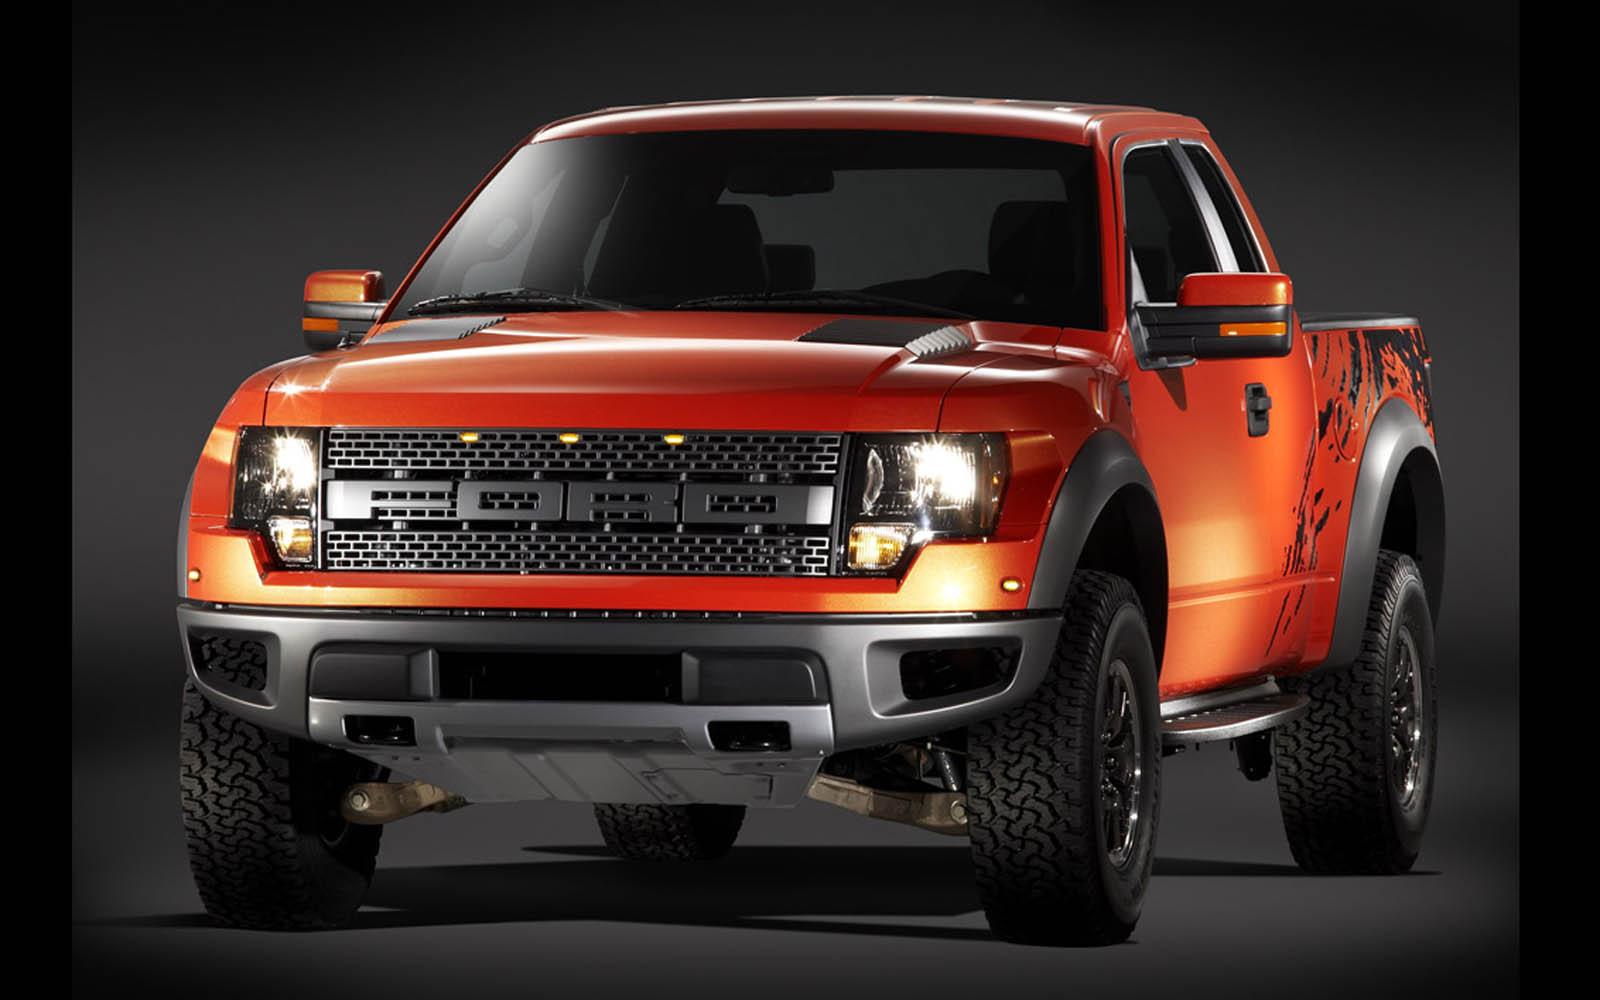 Tag Ford F 150 SVT Raptor Wallpapers Images Photos and Pictures for 1600x1000